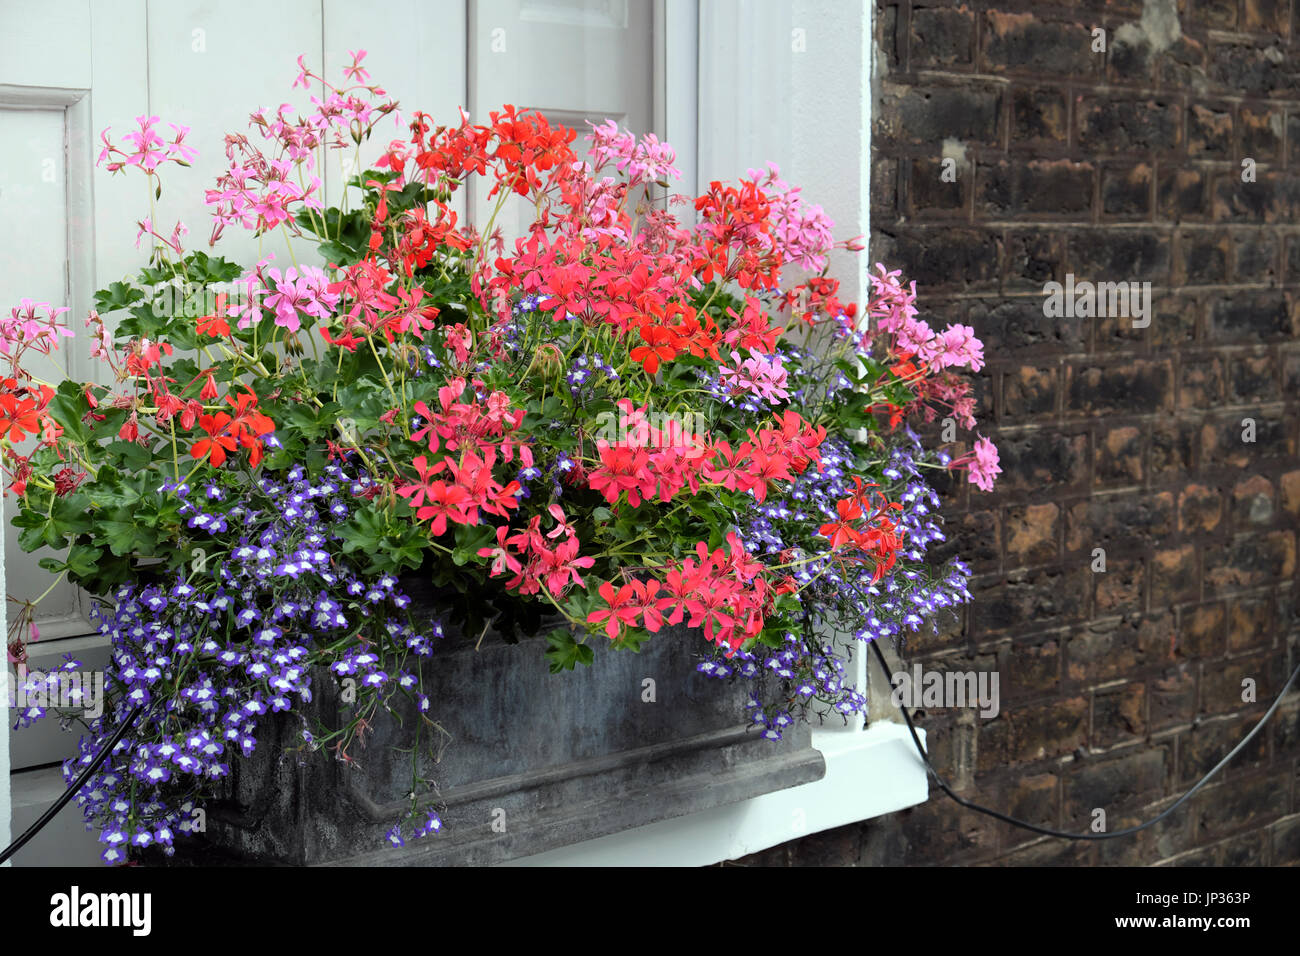 Window box filled with pelargoniums outside a house on Colebrooke Row in Islington, North London N1 England UK  KATHY DEWITT - Stock Image